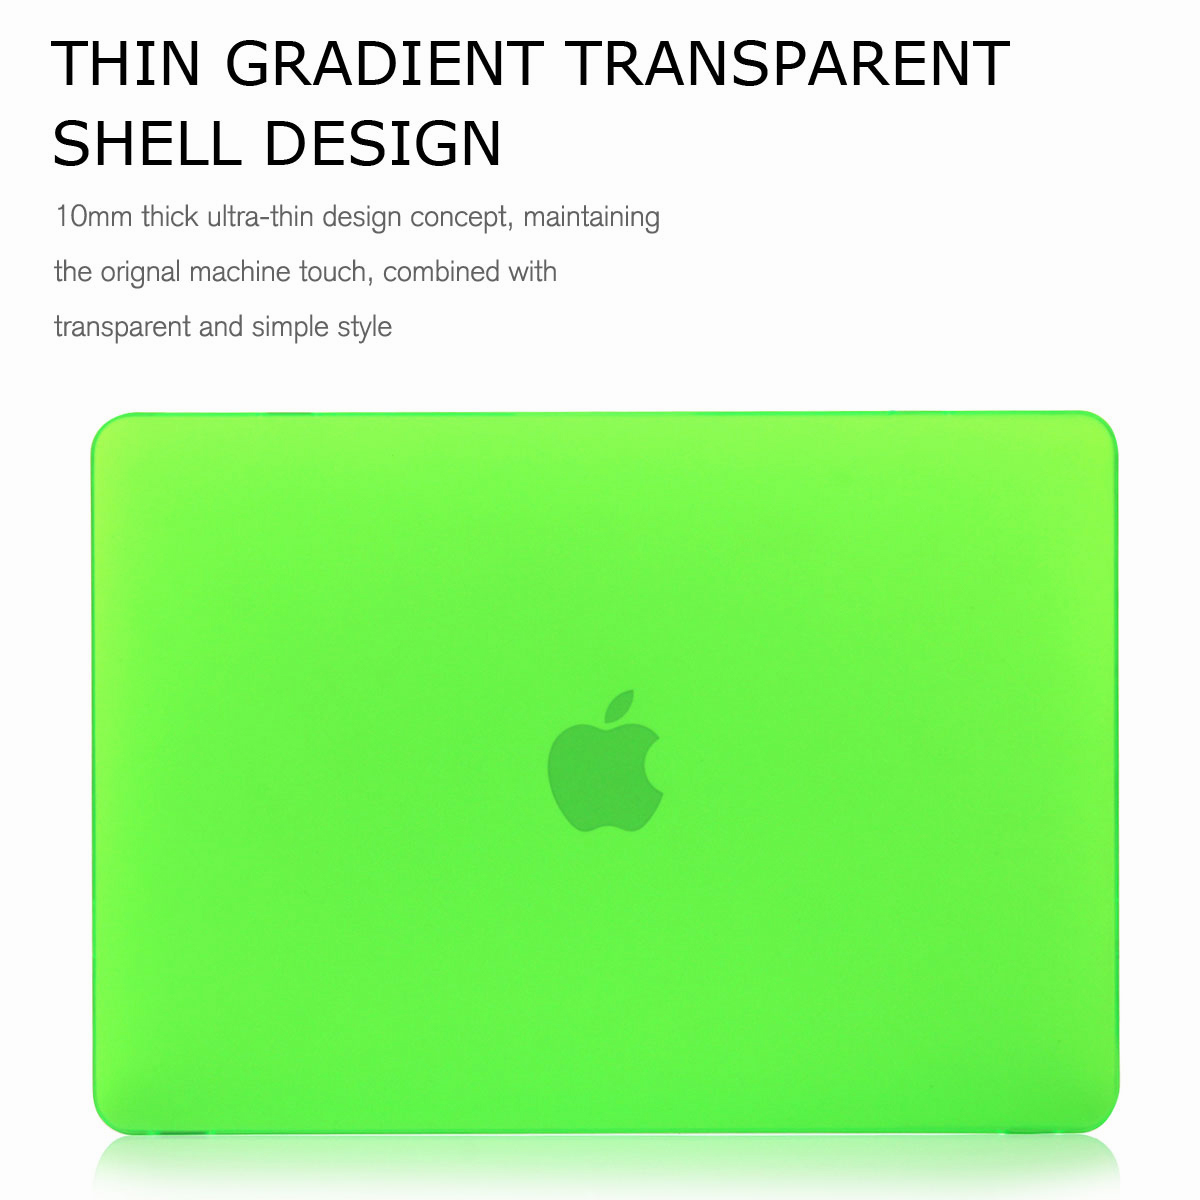 Shockproof-Rubberized-Matte-Hard-Case-Cover-For-Macbook-13-034-15-034-Inch-A1286-A1278 thumbnail 22